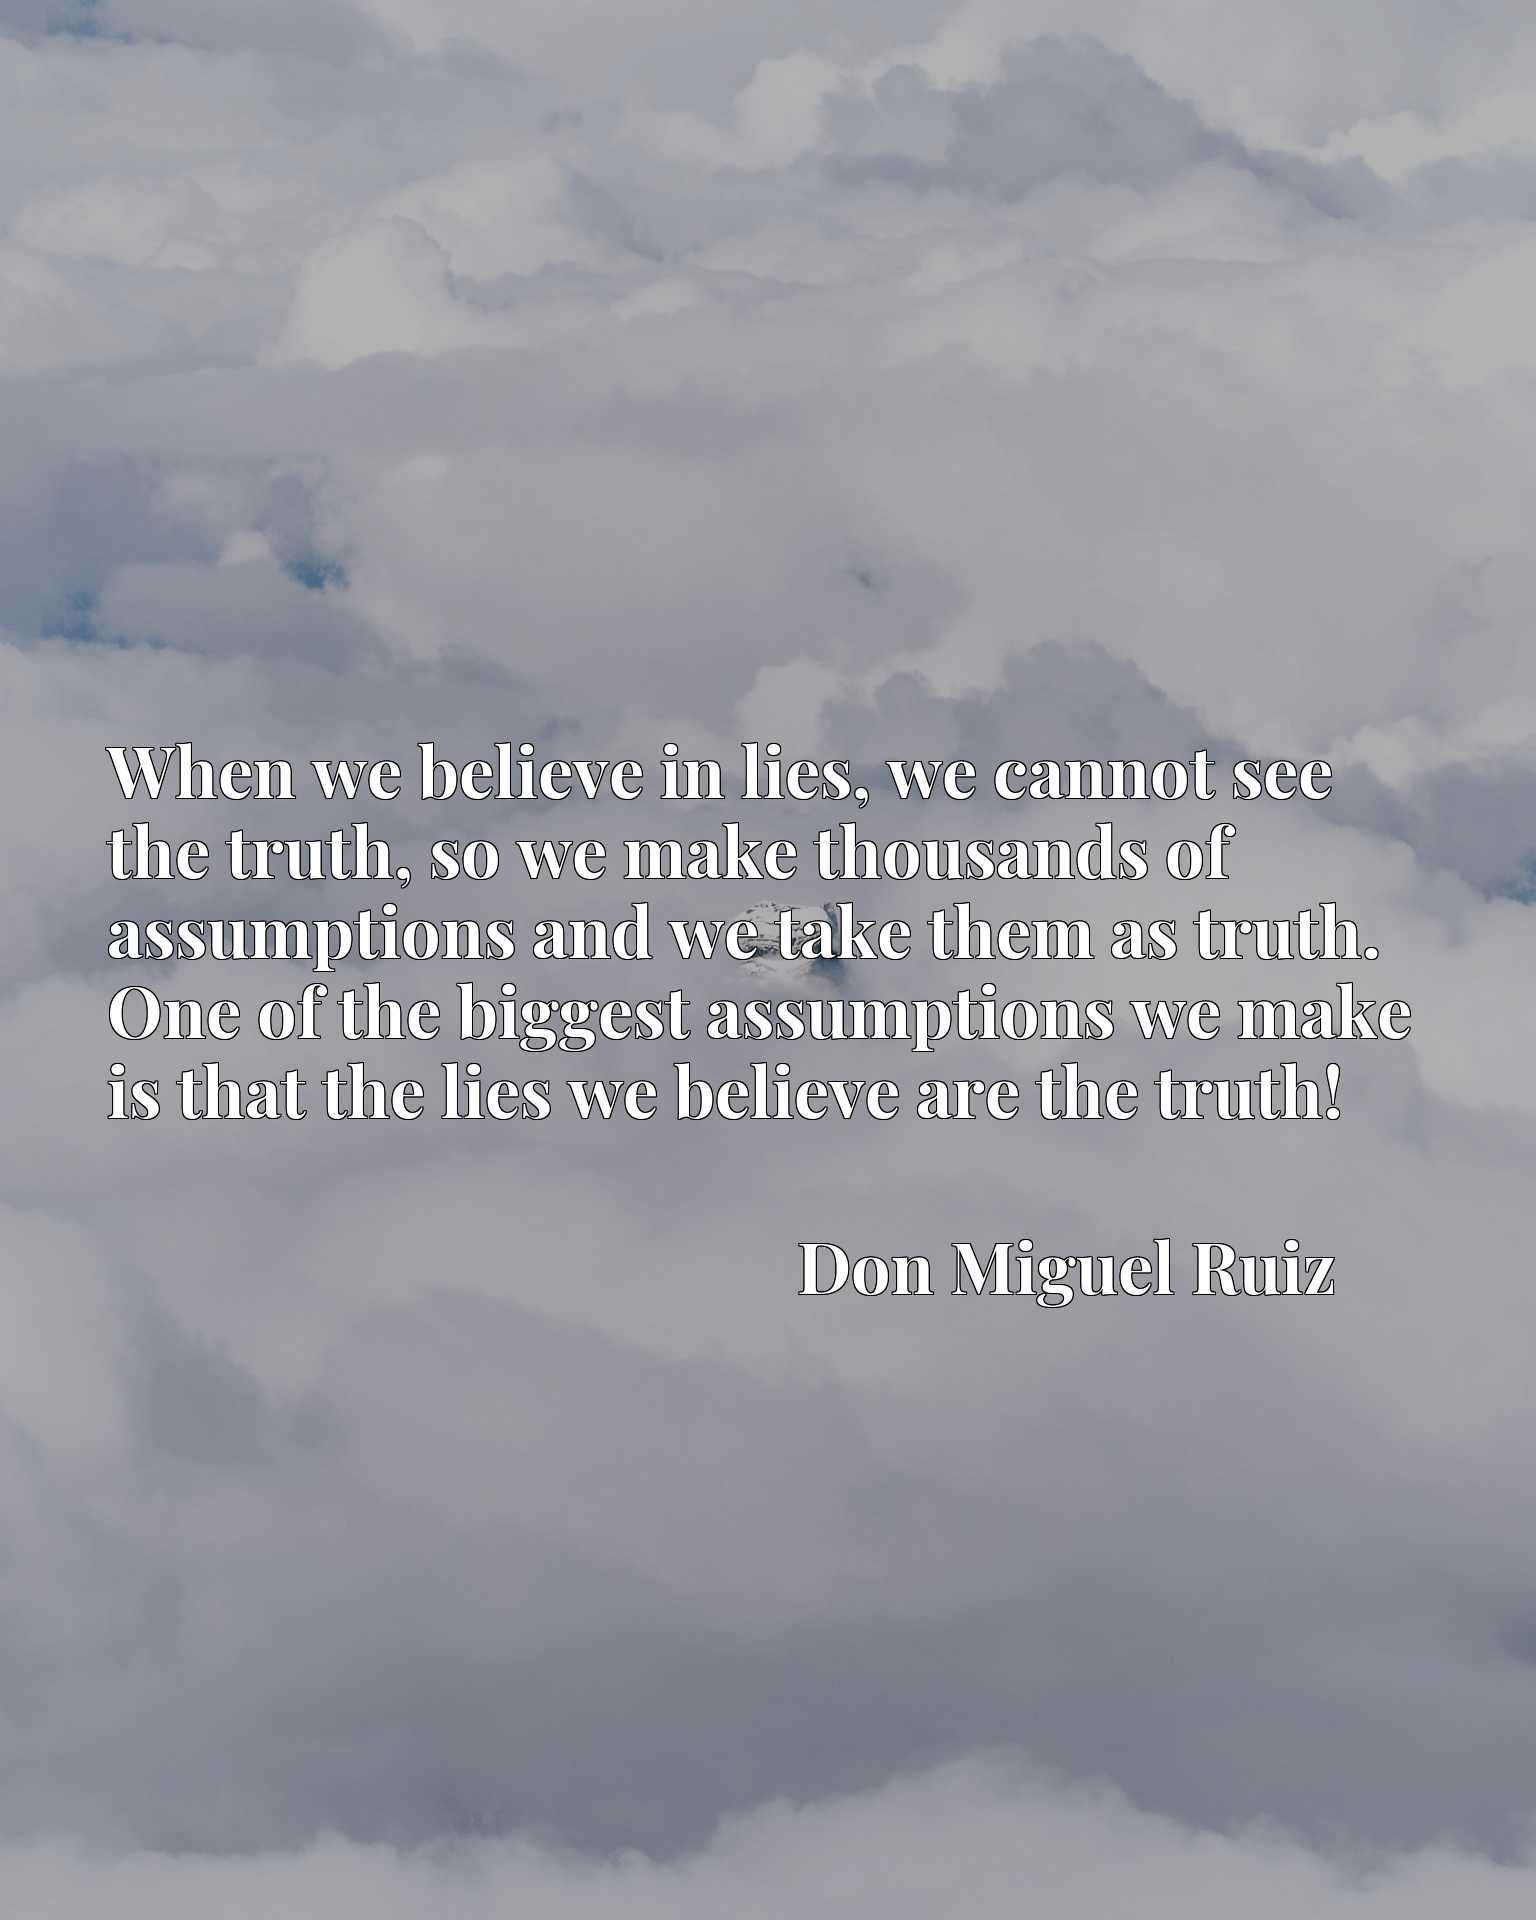 When we believe in lies, we cannot see the truth, so we make thousands of assumptions and we take them as truth. One of the biggest assumptions we make is that the lies we believe are the truth!